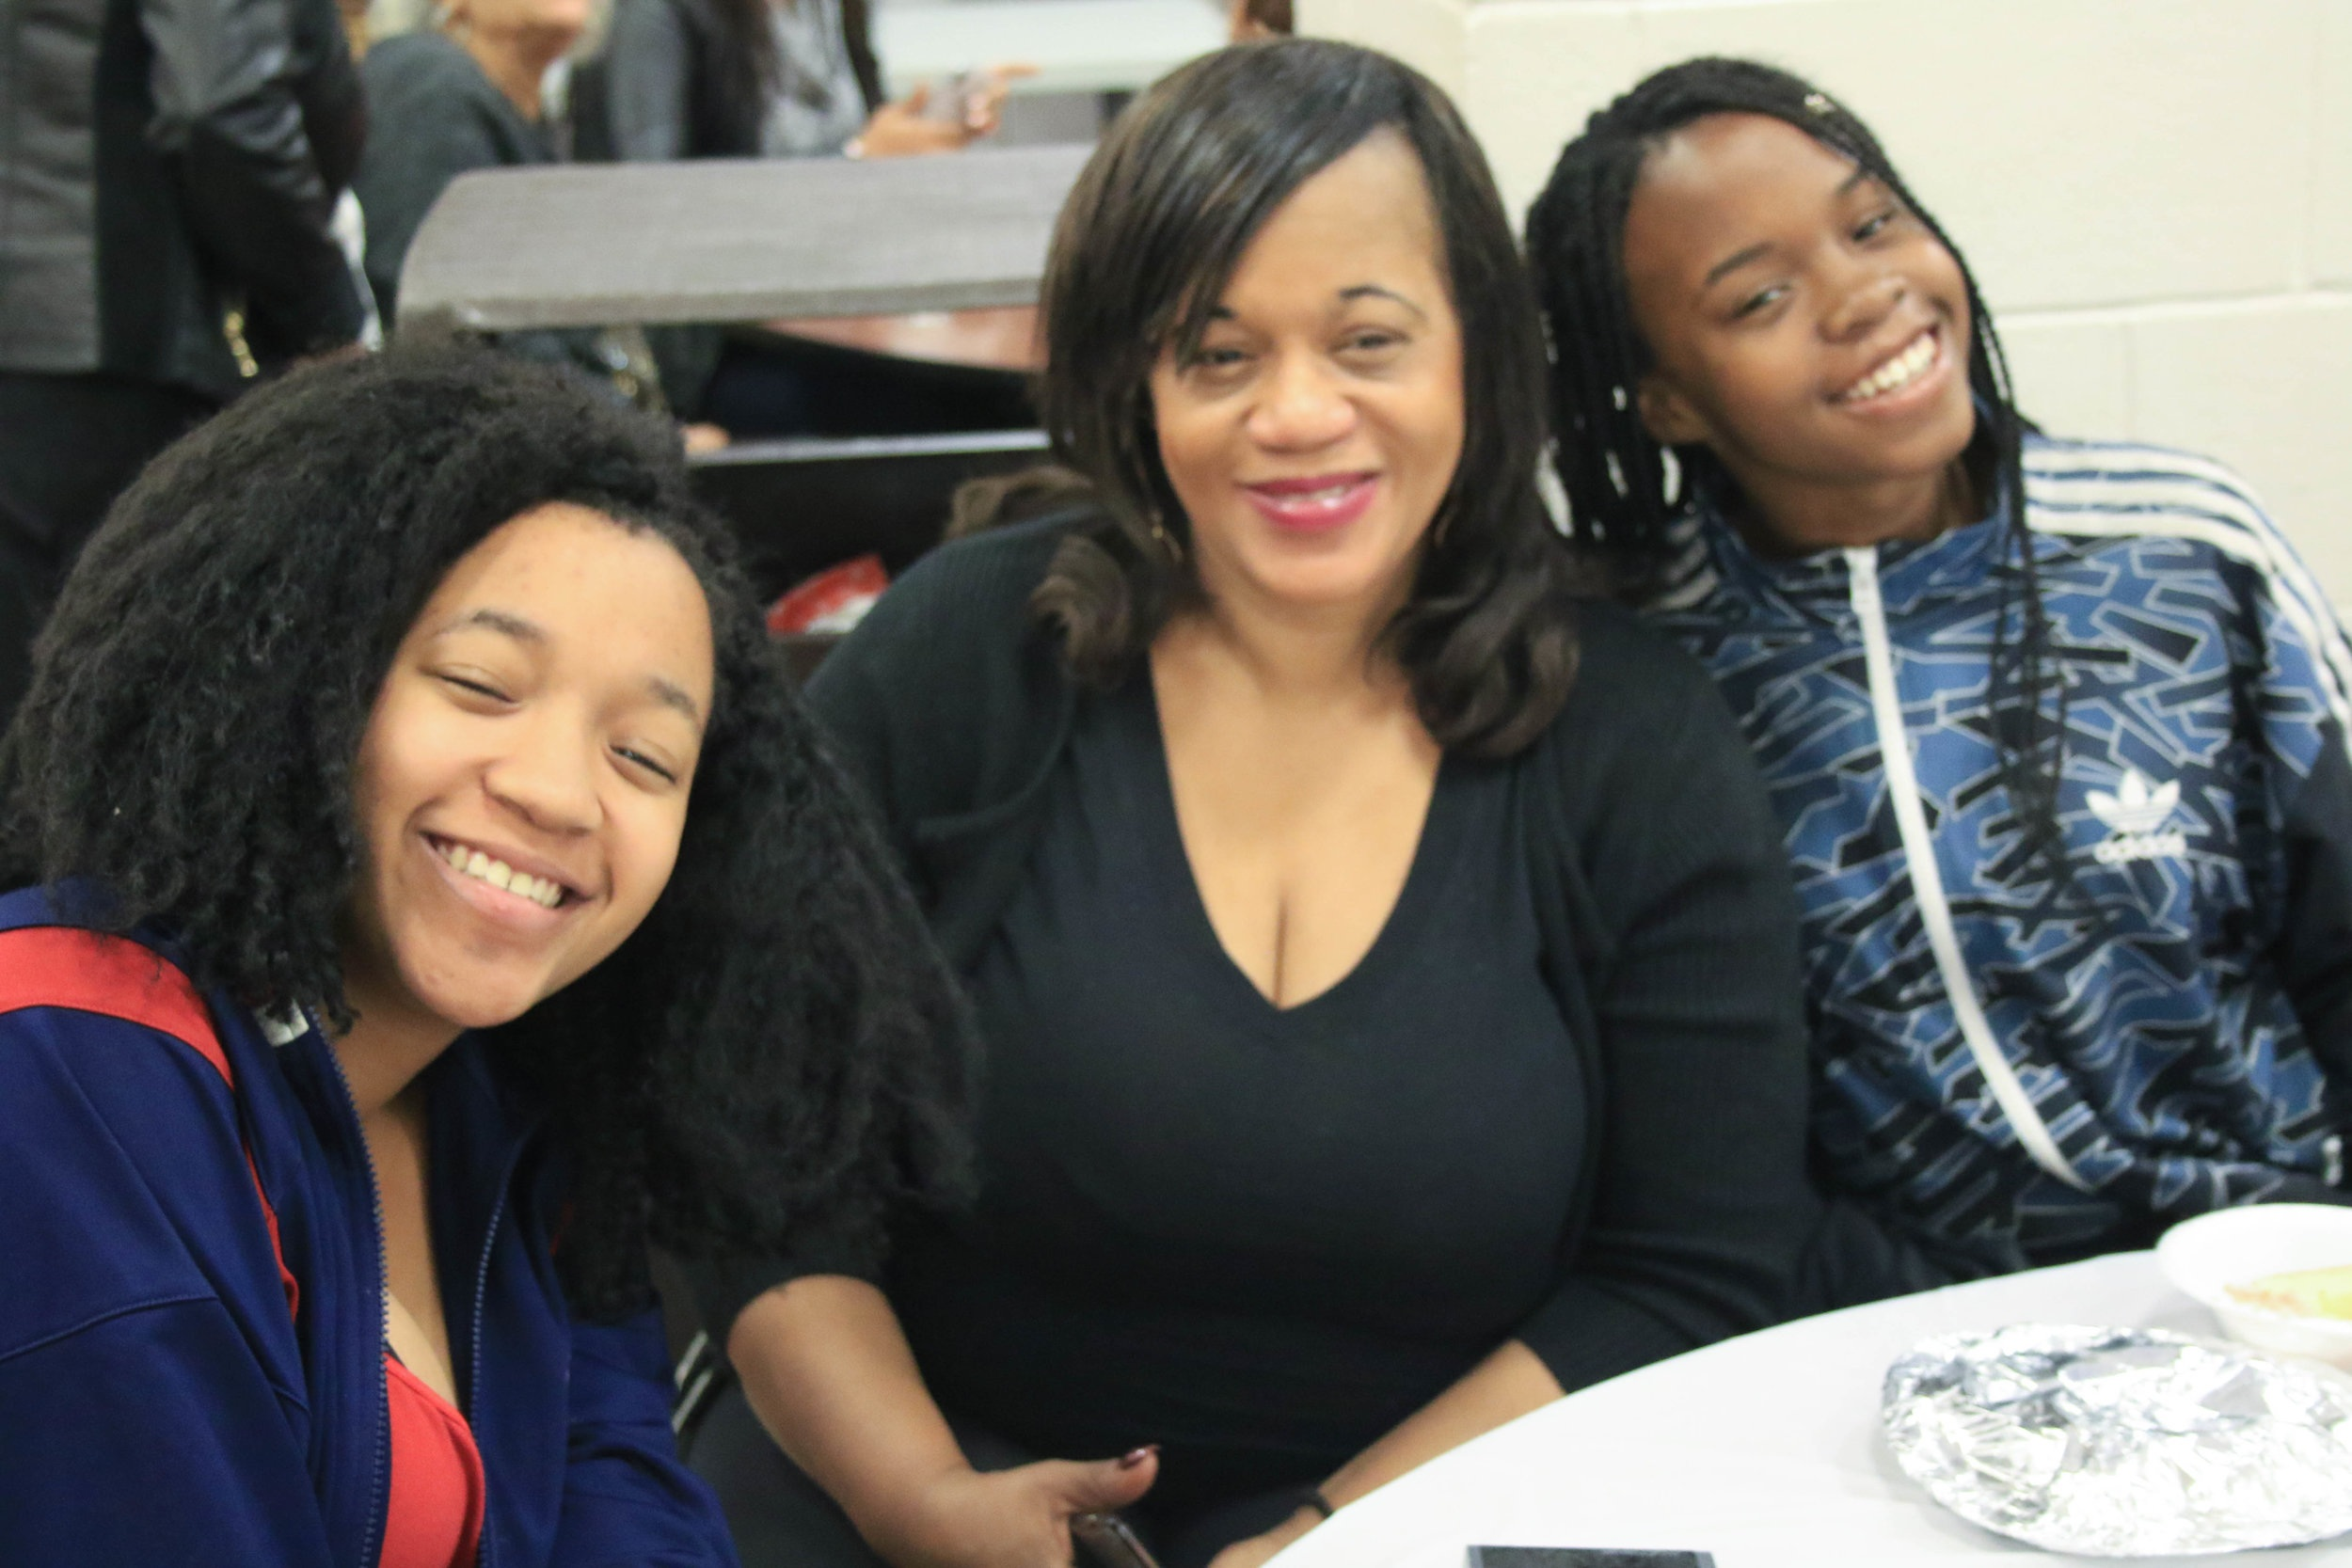 - We invite you to join our efforts by supporting our mission of inspiring and guiding Montclair's young women. All of your support will go directly to provide mentor training, educational activities, including college tours and cultural trips, as well as our annual retreat.